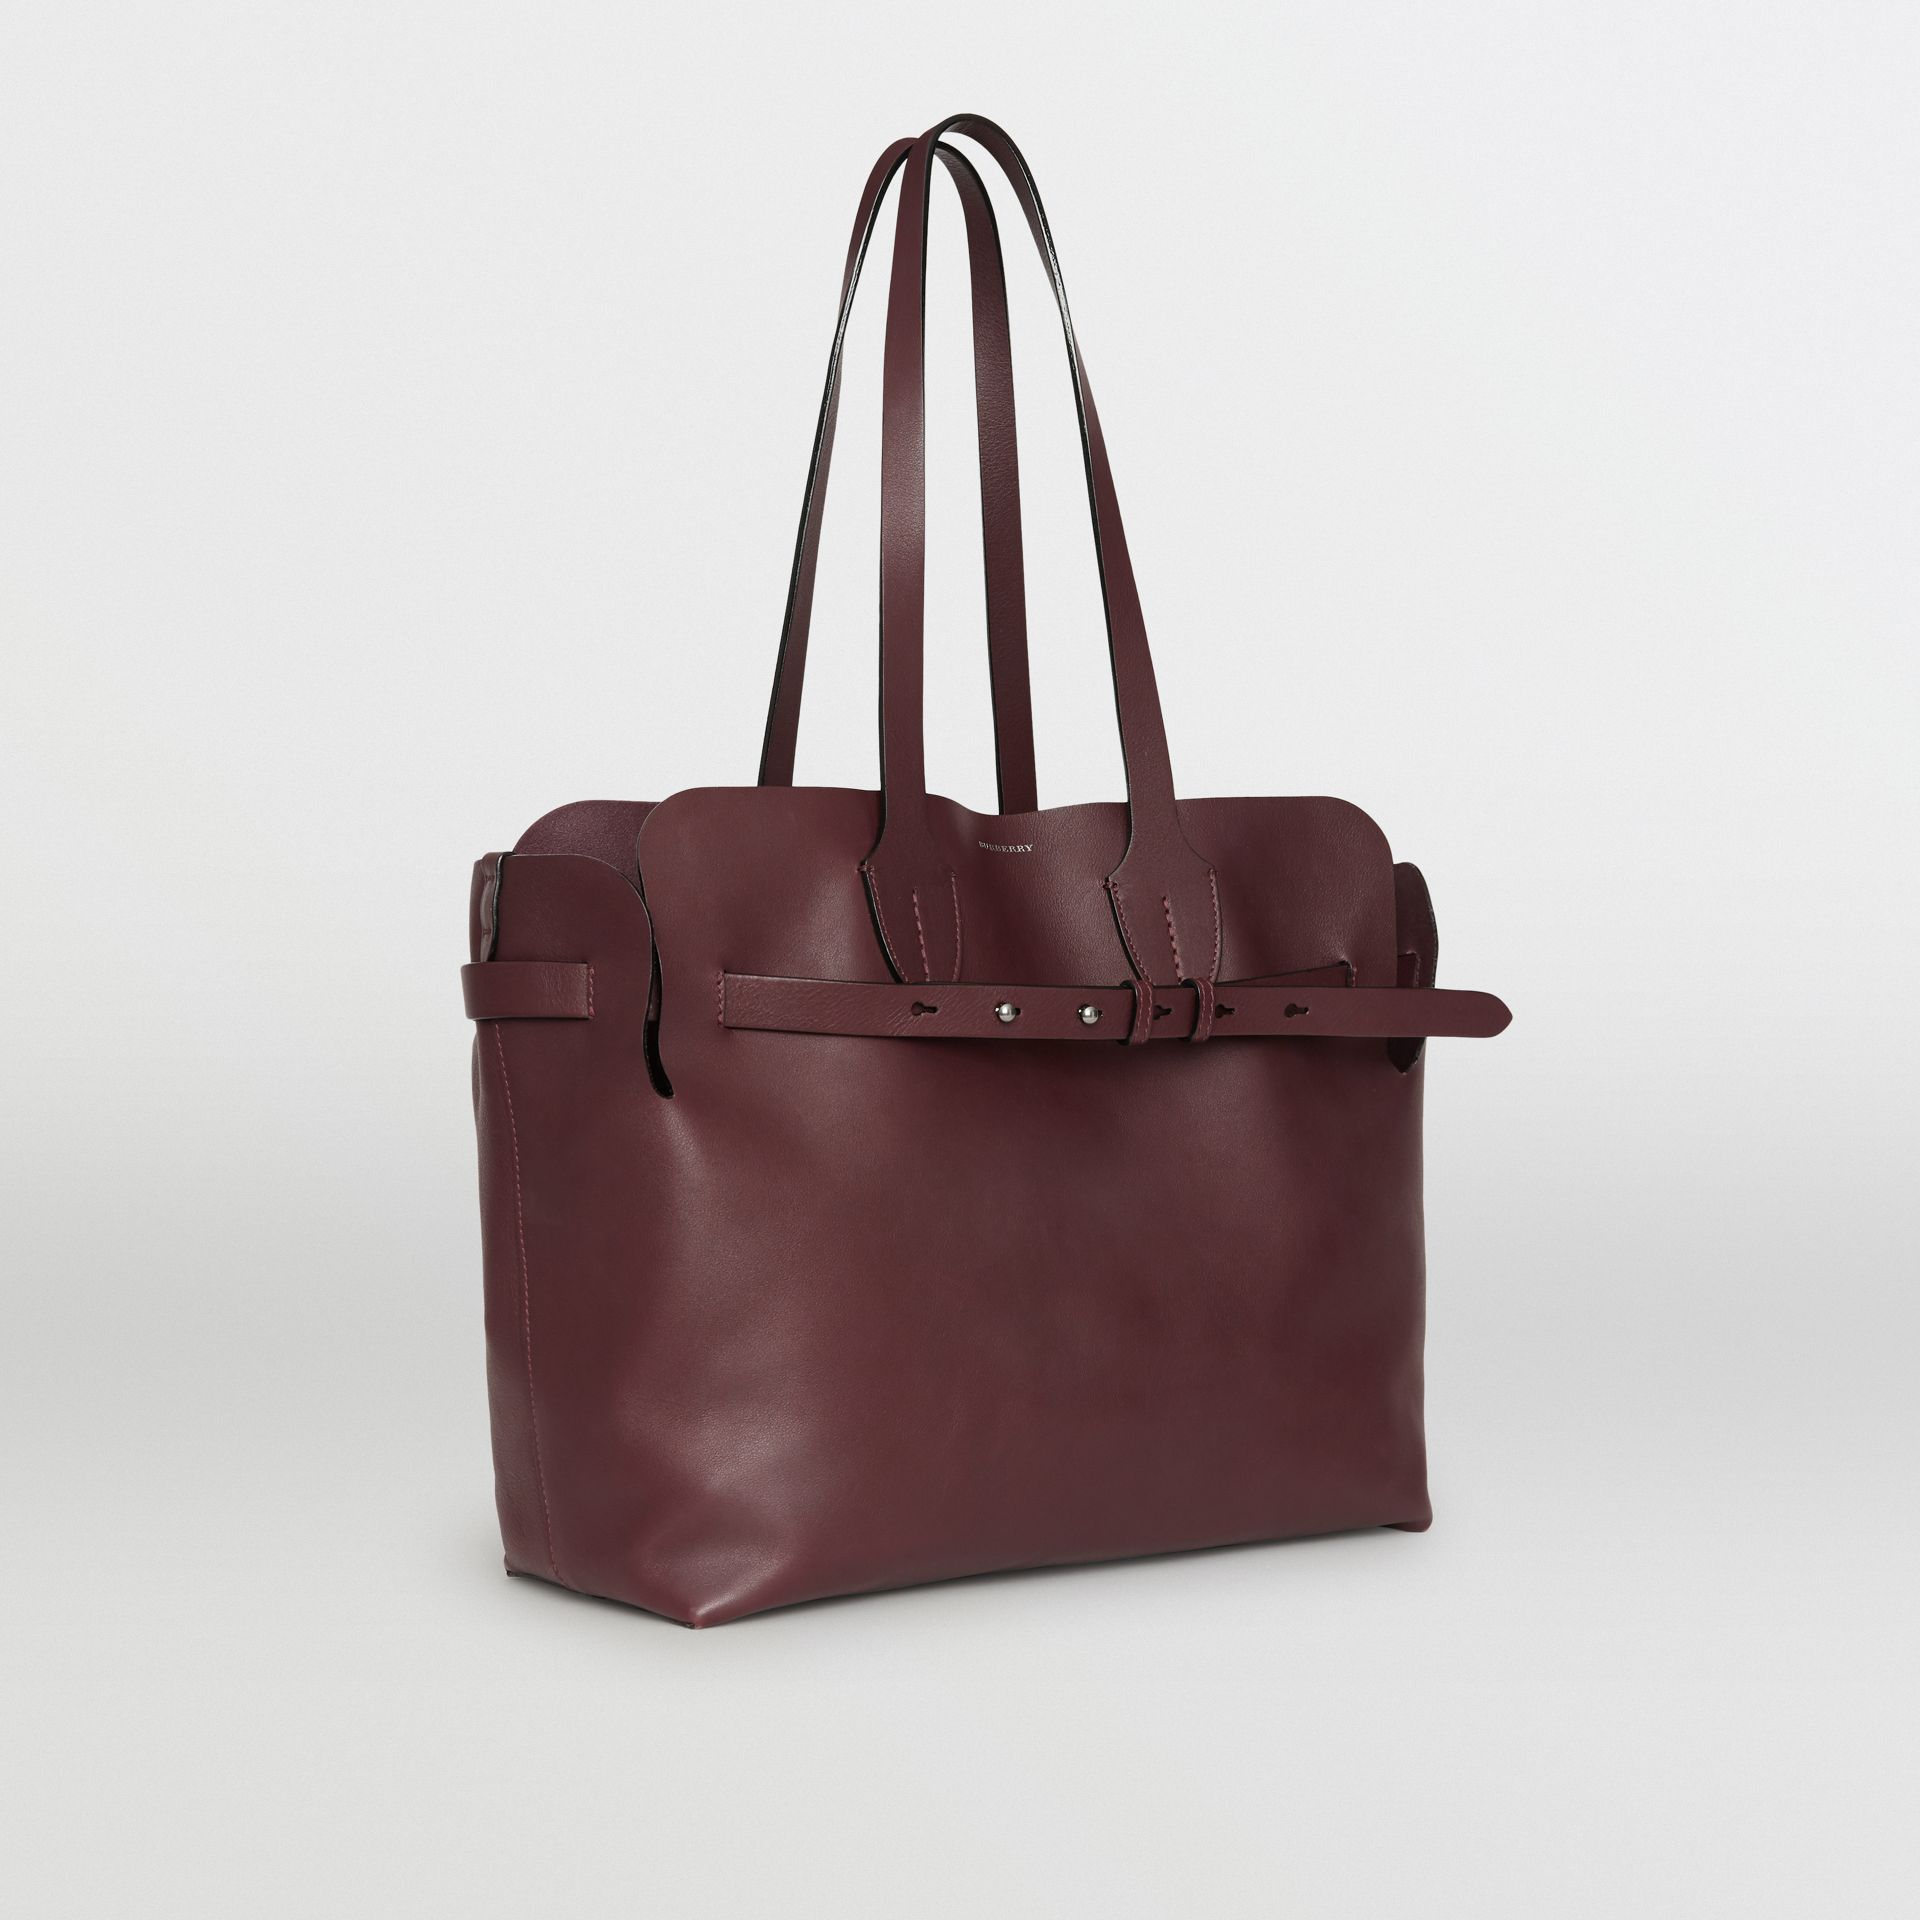 Sac The Belt moyen en cuir doux (Bordeaux Intense) - Femme | Burberry - photo de la galerie 4